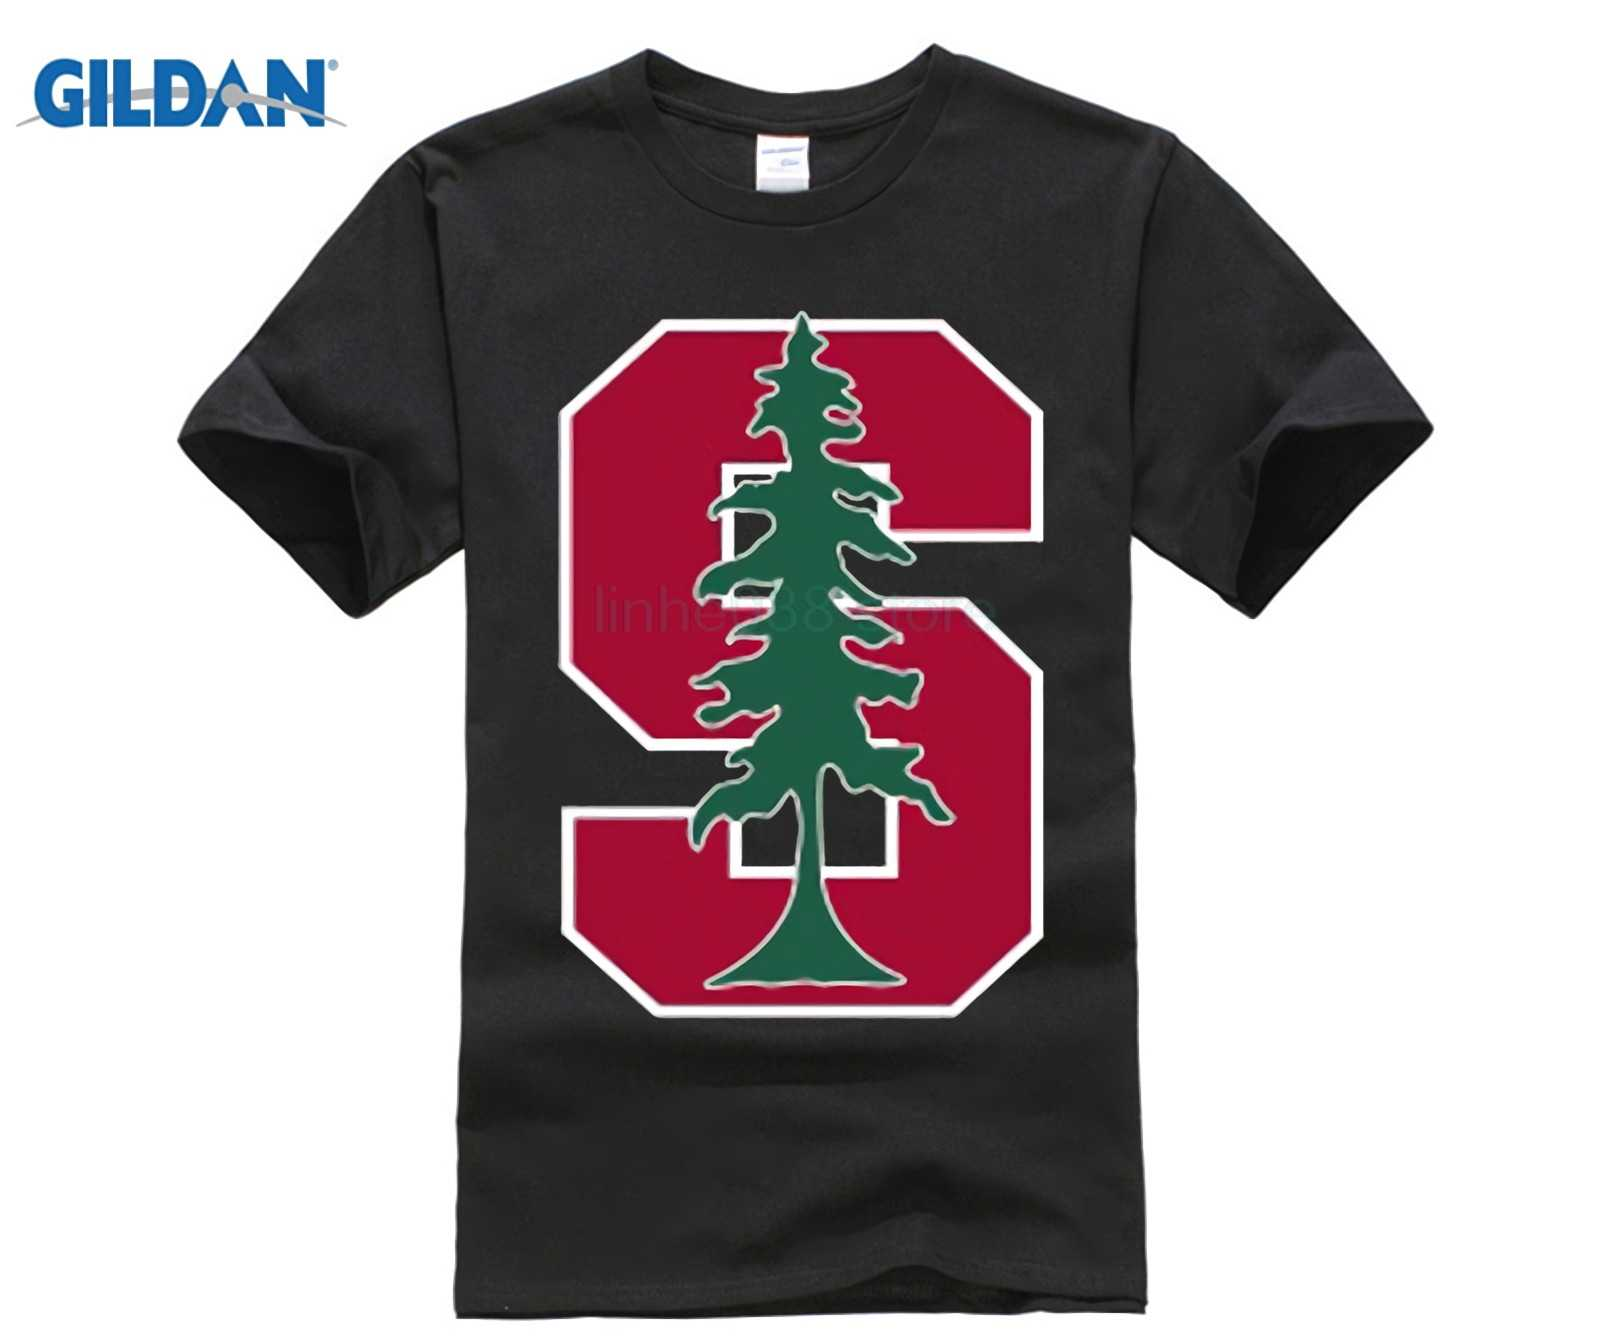 633aac8af GILDAN New Stanford University Logo Men's White Black T-Shirt Size S M L XL  2XL Summer Short Sleeves New Fashion T Shirt Couple